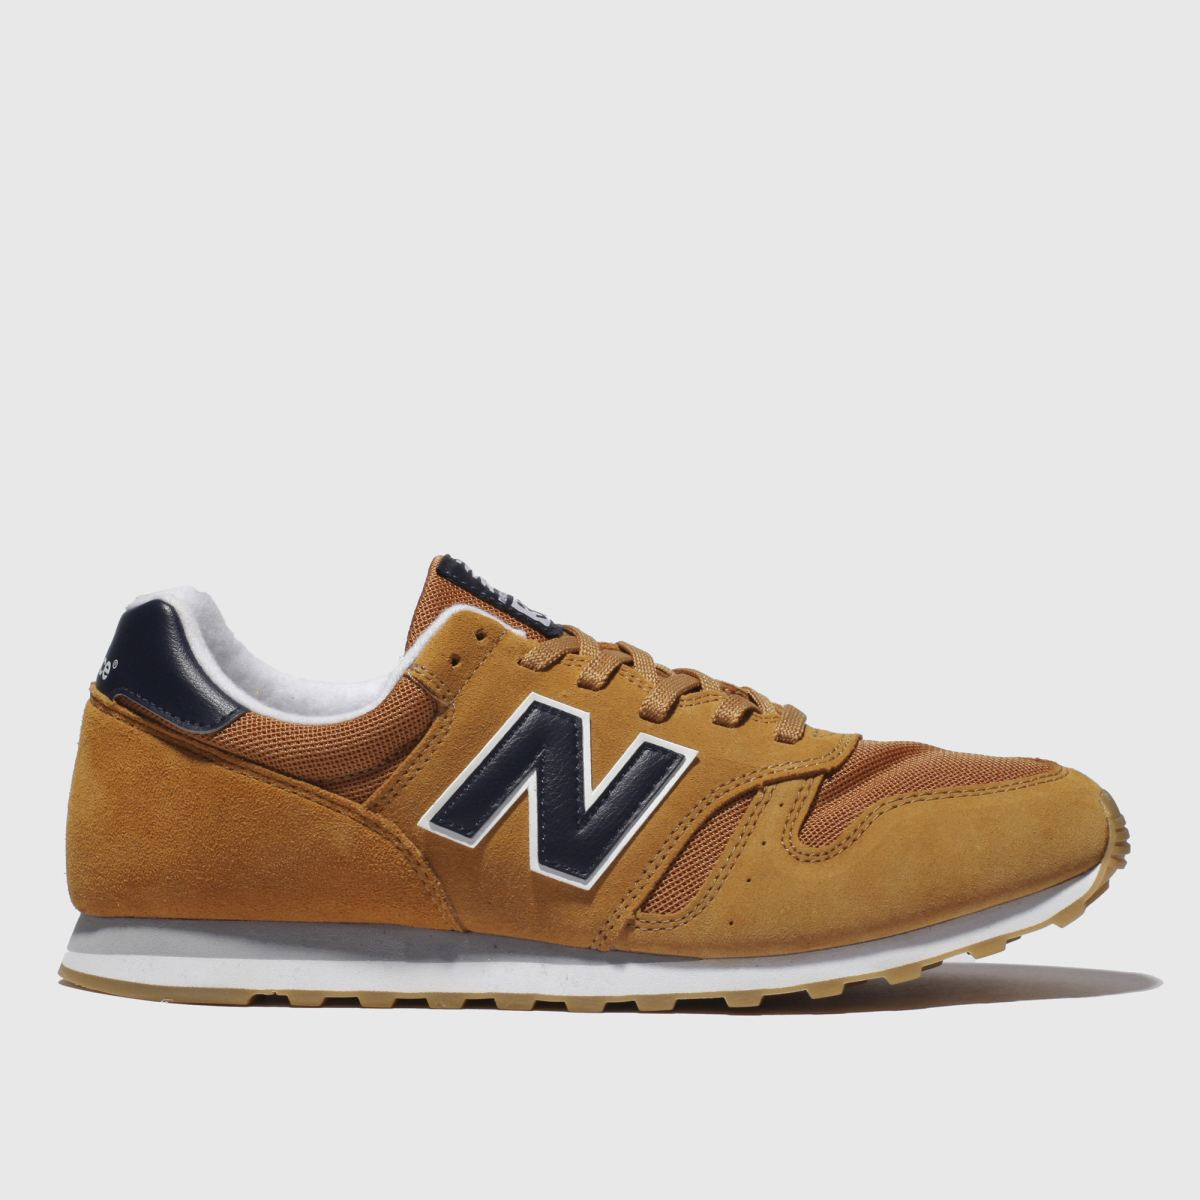 New Balance Tan 373 Trainers | Compare | Highcross Shopping Centre ...